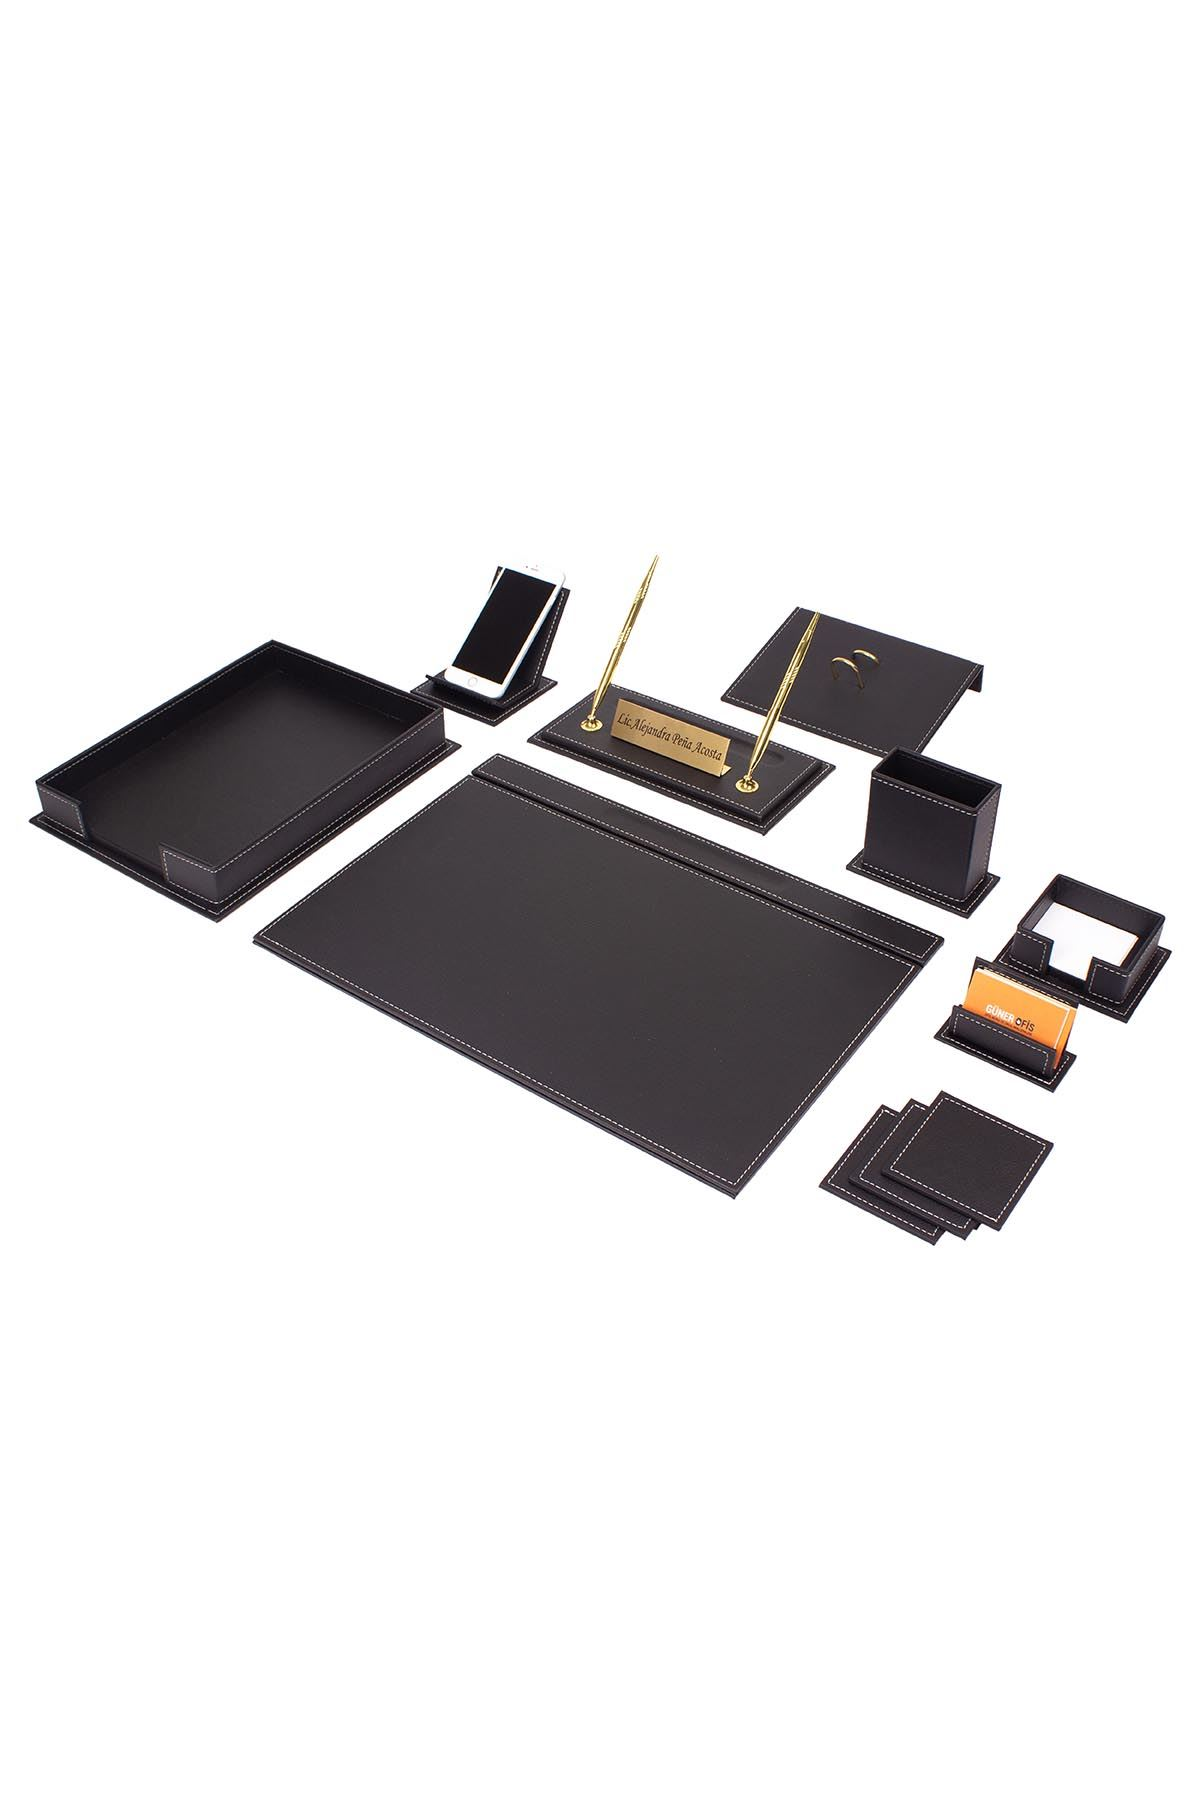 Vega Leather Desk Set Black 13 Accessories